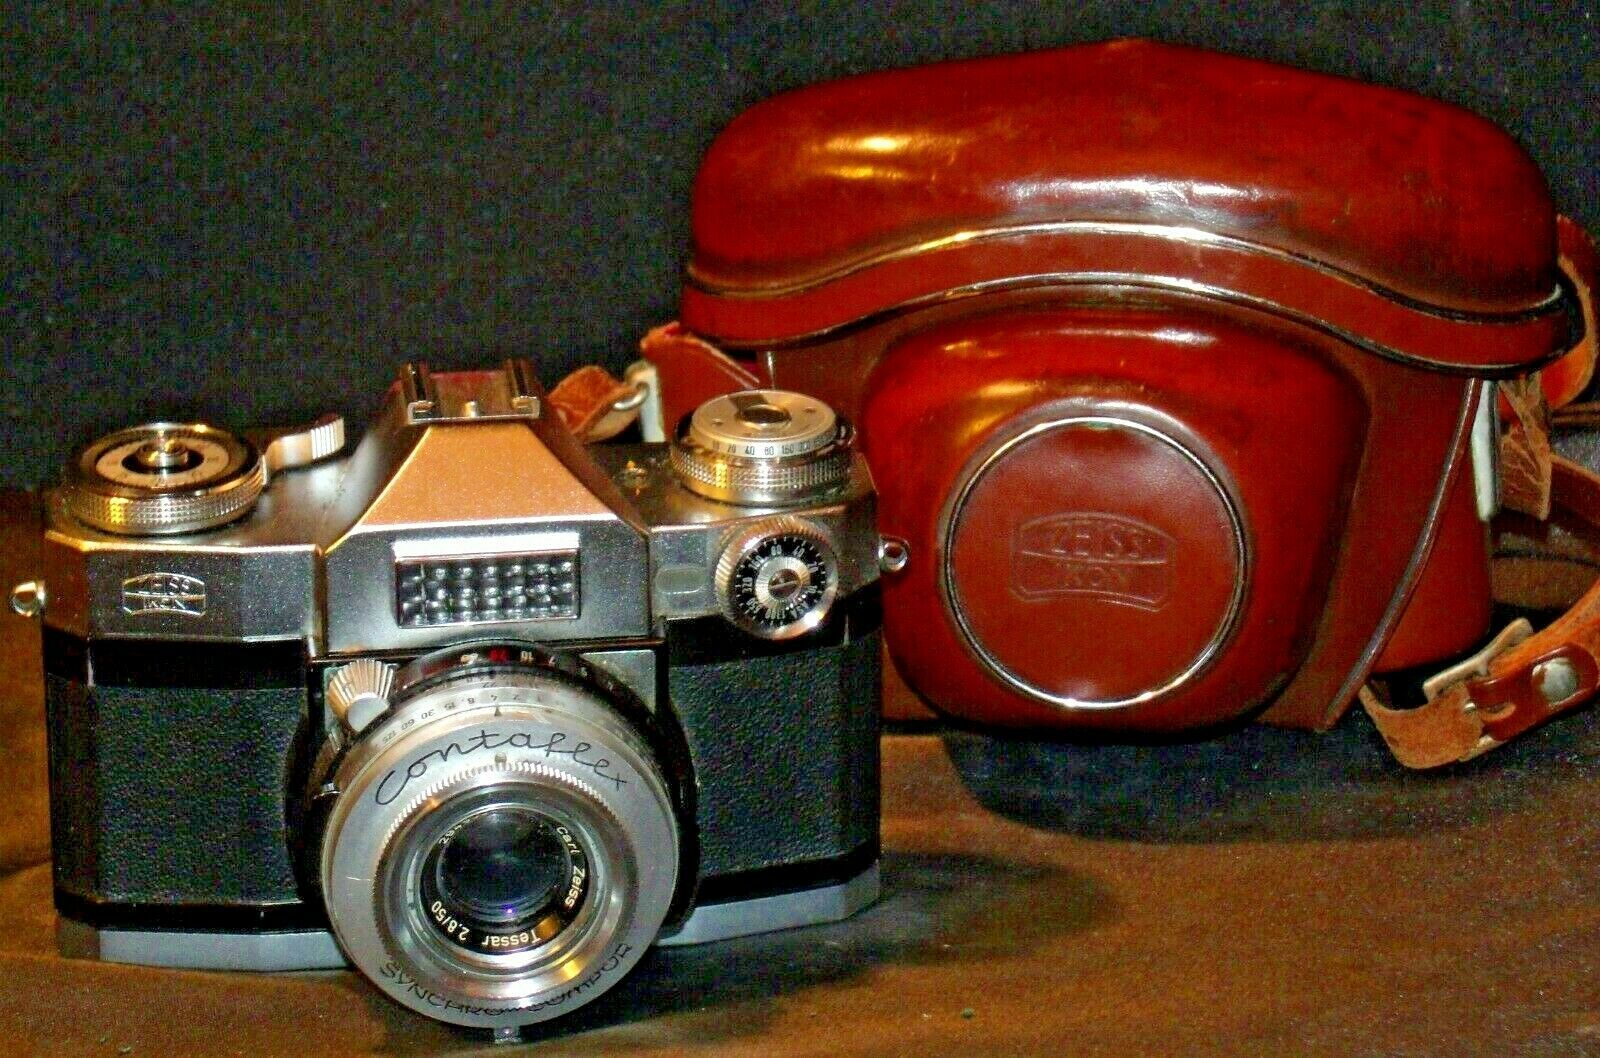 Zeiss Ikon Contaflex Super Camera with hard leather Case AA-192011 Vintage